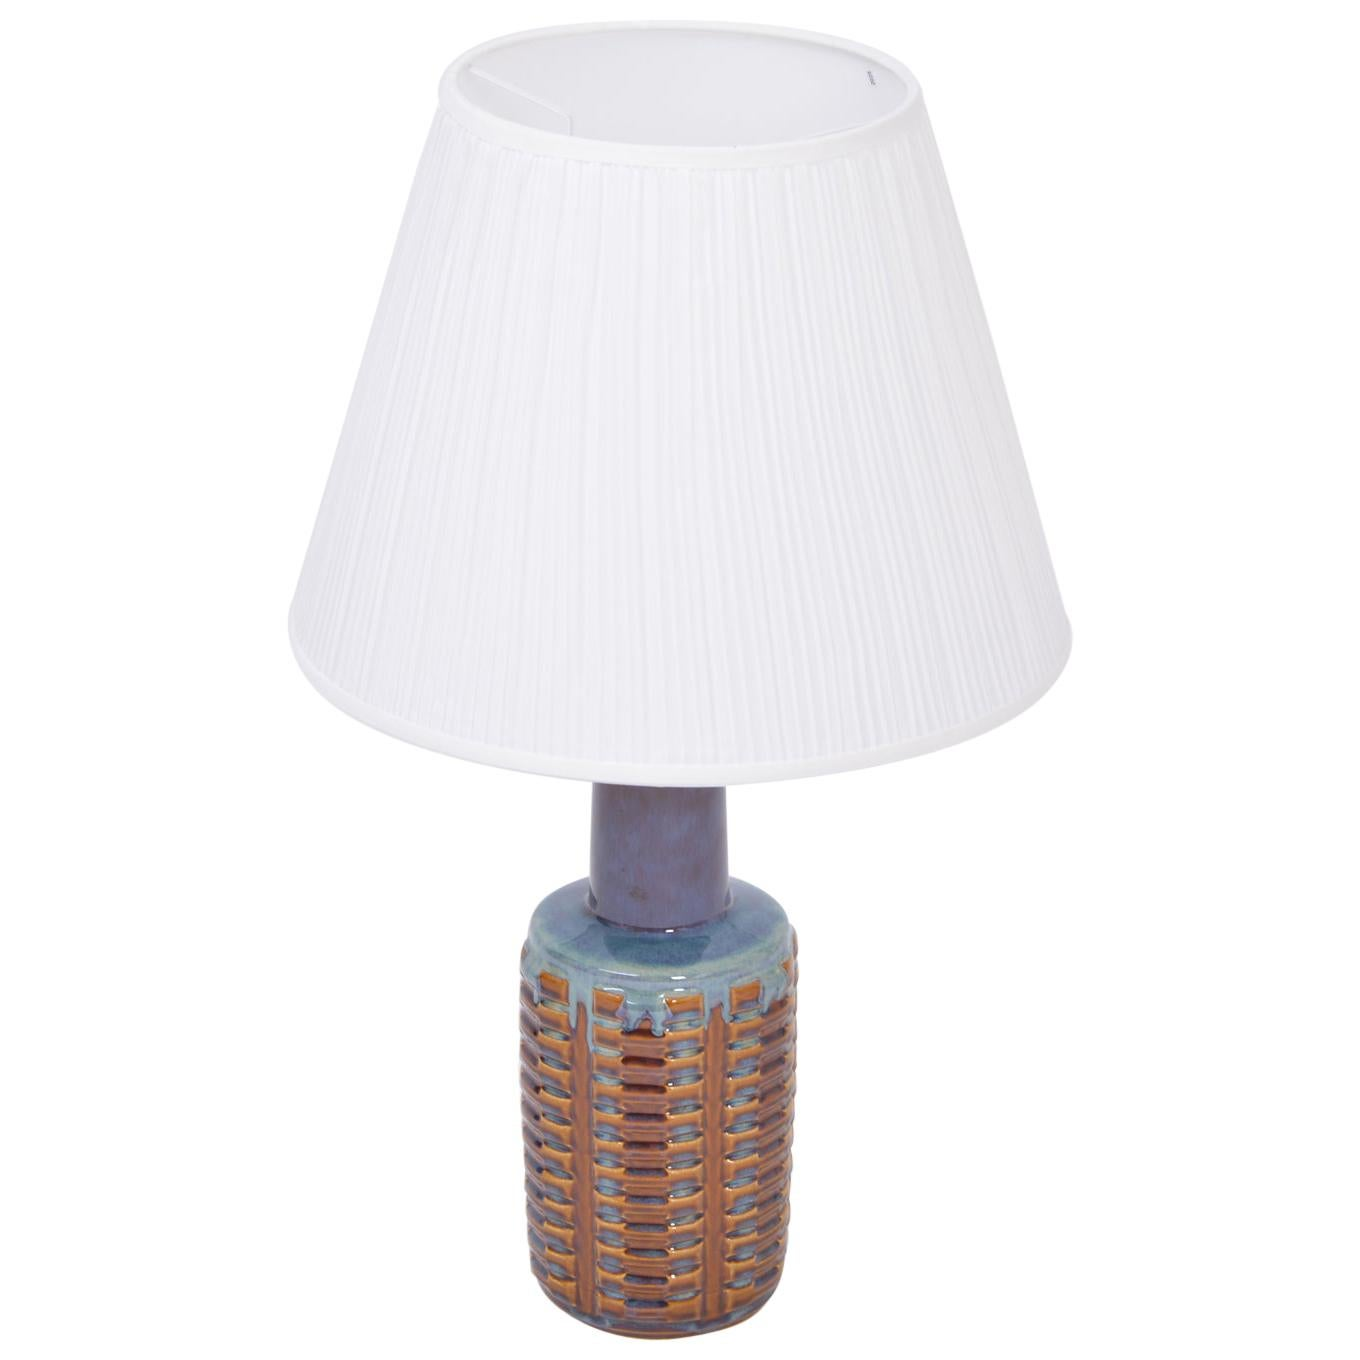 Tall Mid-Century Modern Ceramic table lamp by Einar Johansen for Soholm